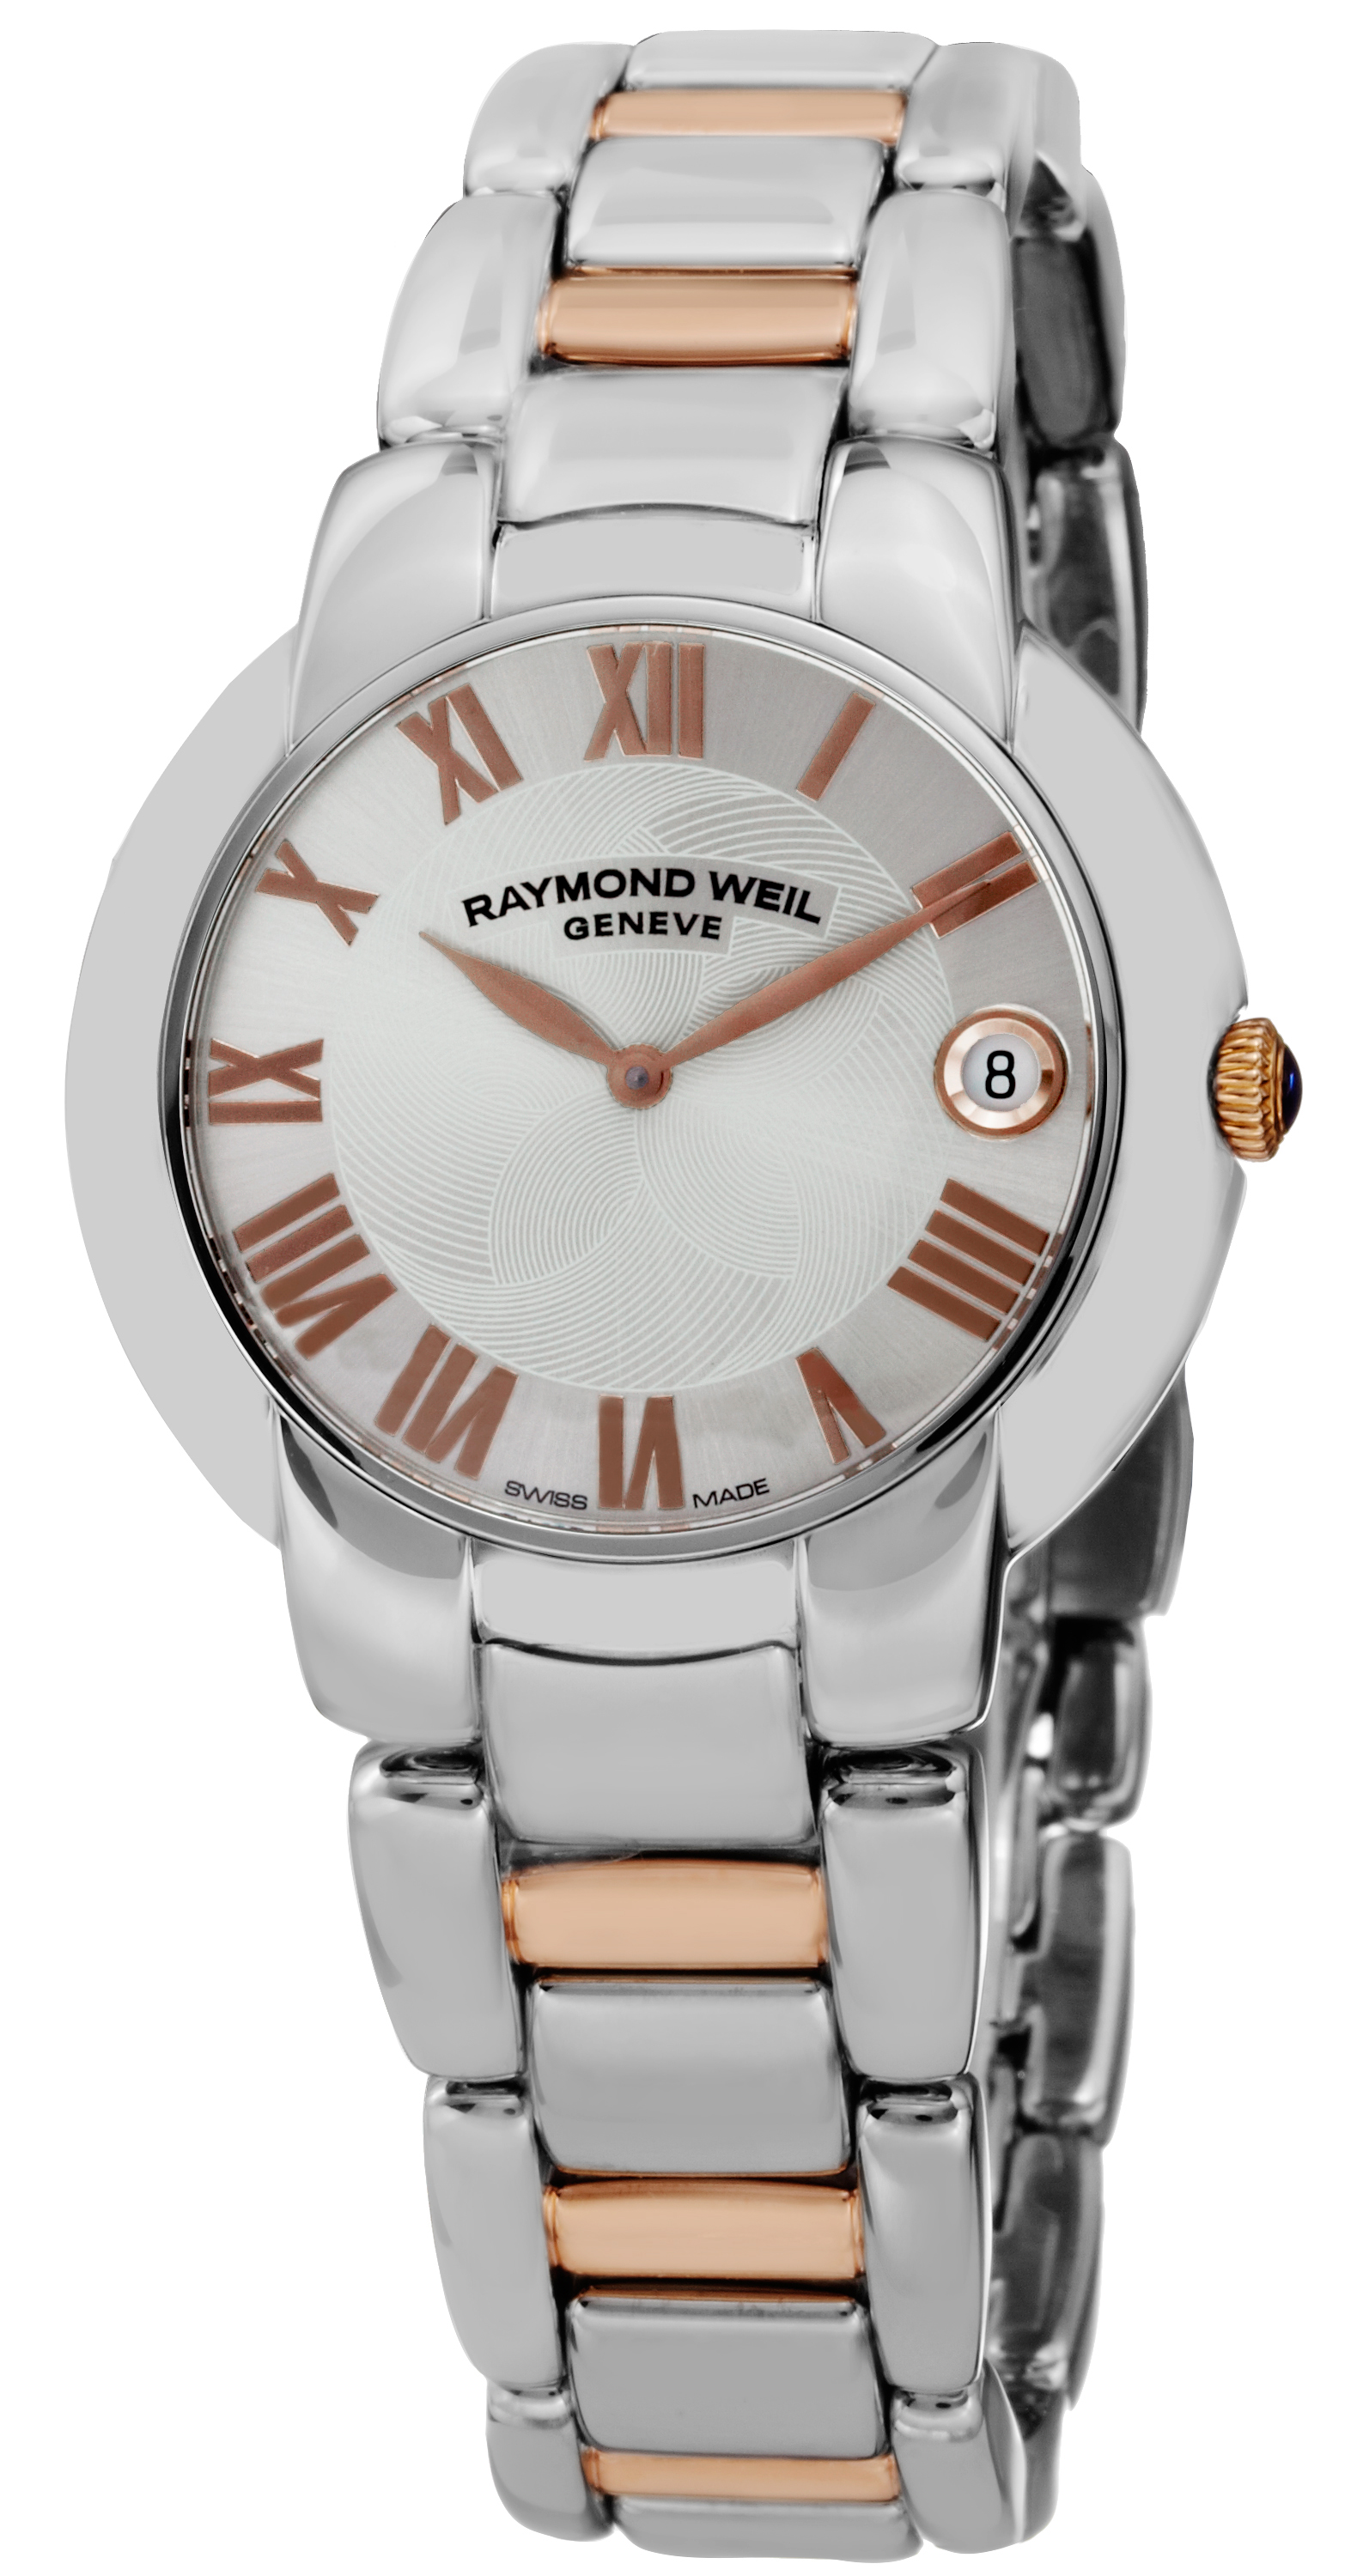 sale mens watch watches collections weil clearance maestro products raymond